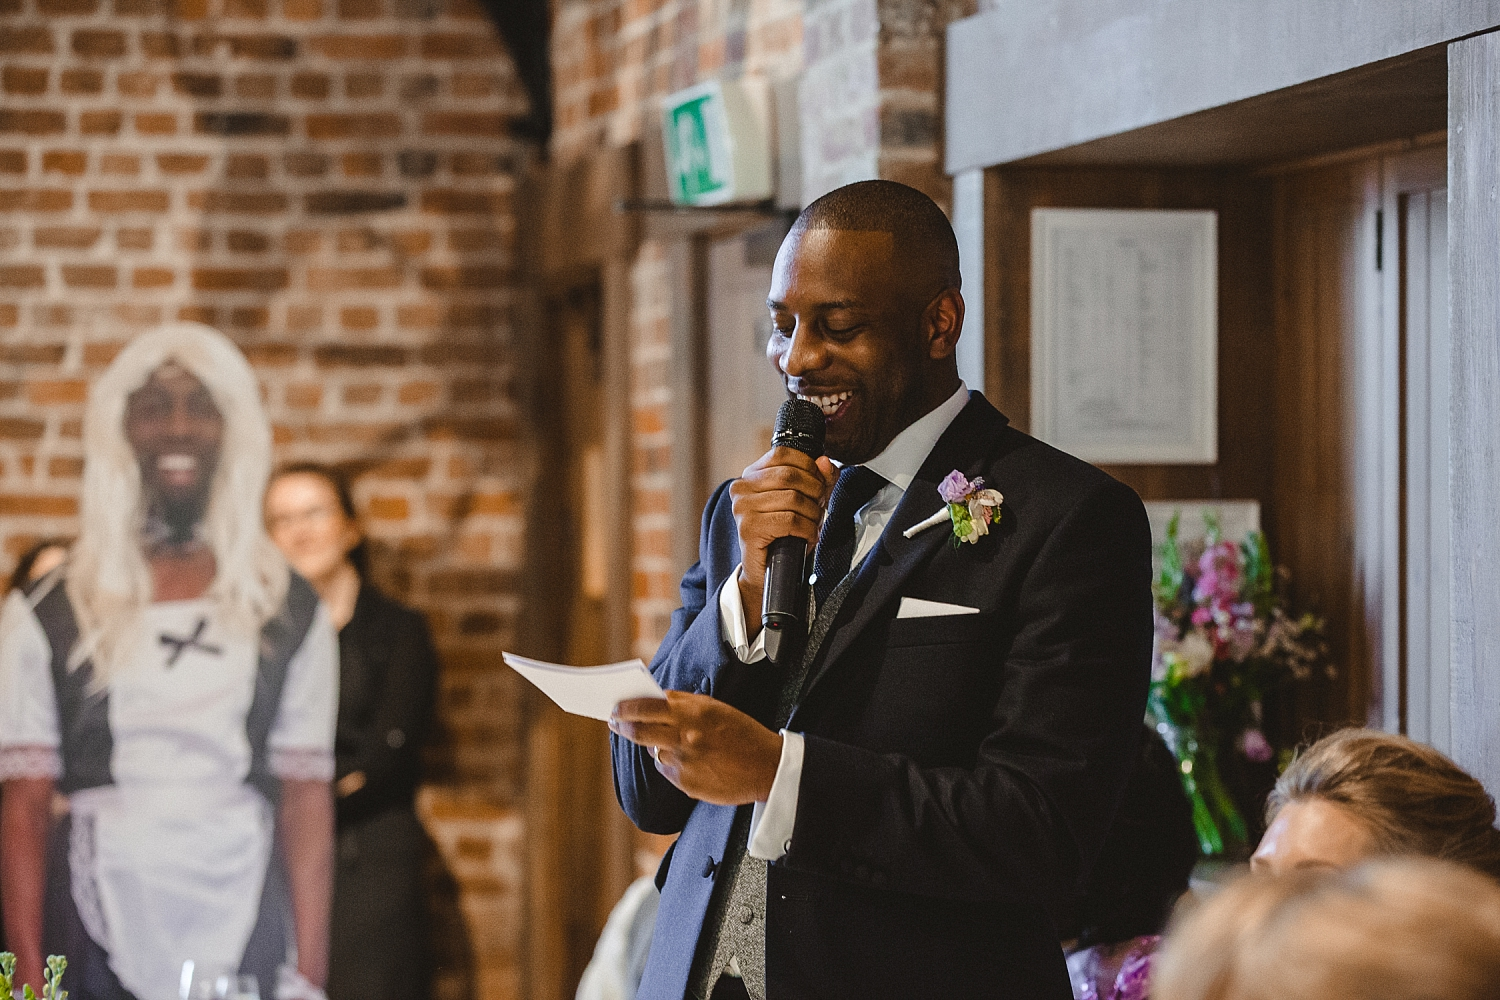 Gaynes Park Wedding - Essex Wedding Photographer - Groom's Speech